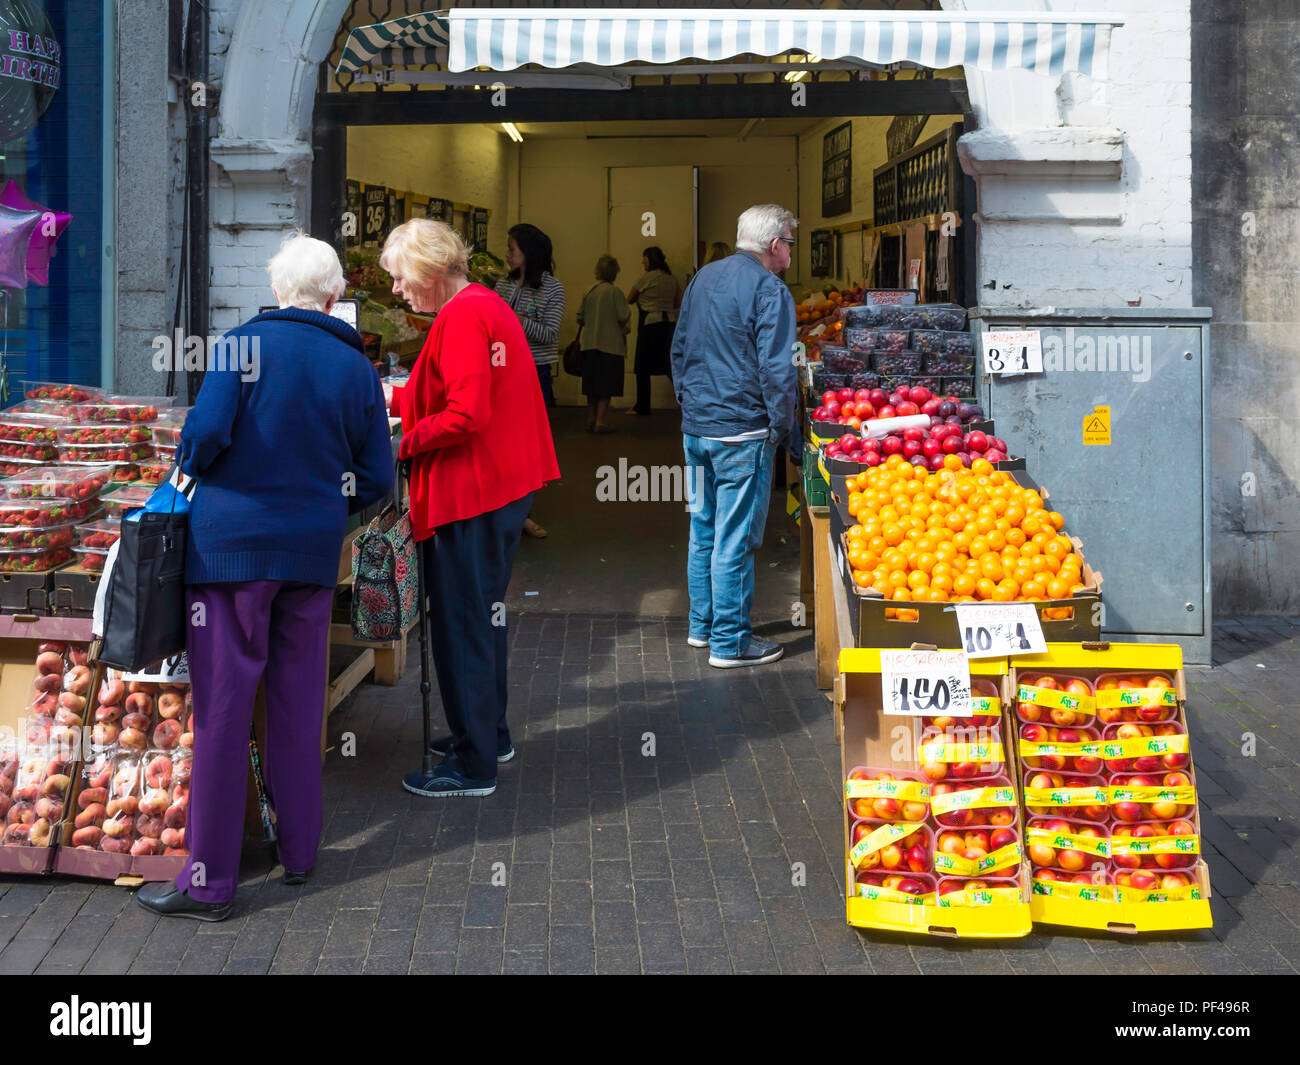 Customers at a greengrocer and fruiterers shop in an Archway in Middlesbrough Town Centre Stock Photo